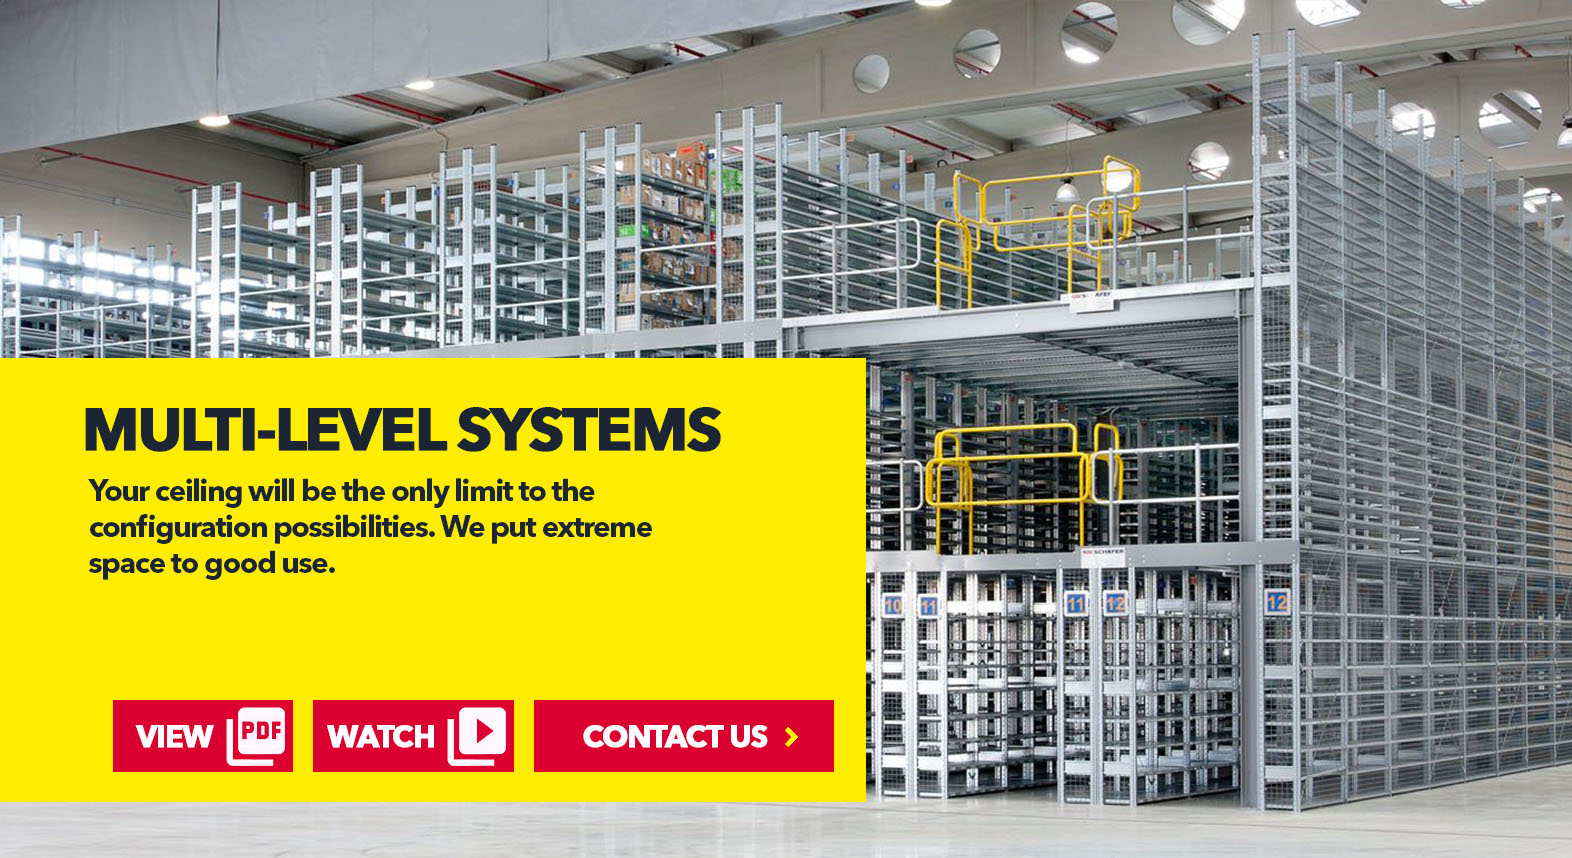 Multi-Level Shelving Systems by SSI Schaefer USA. Download PDF. Watch Video. Contact Us. www.chaefershelving.com